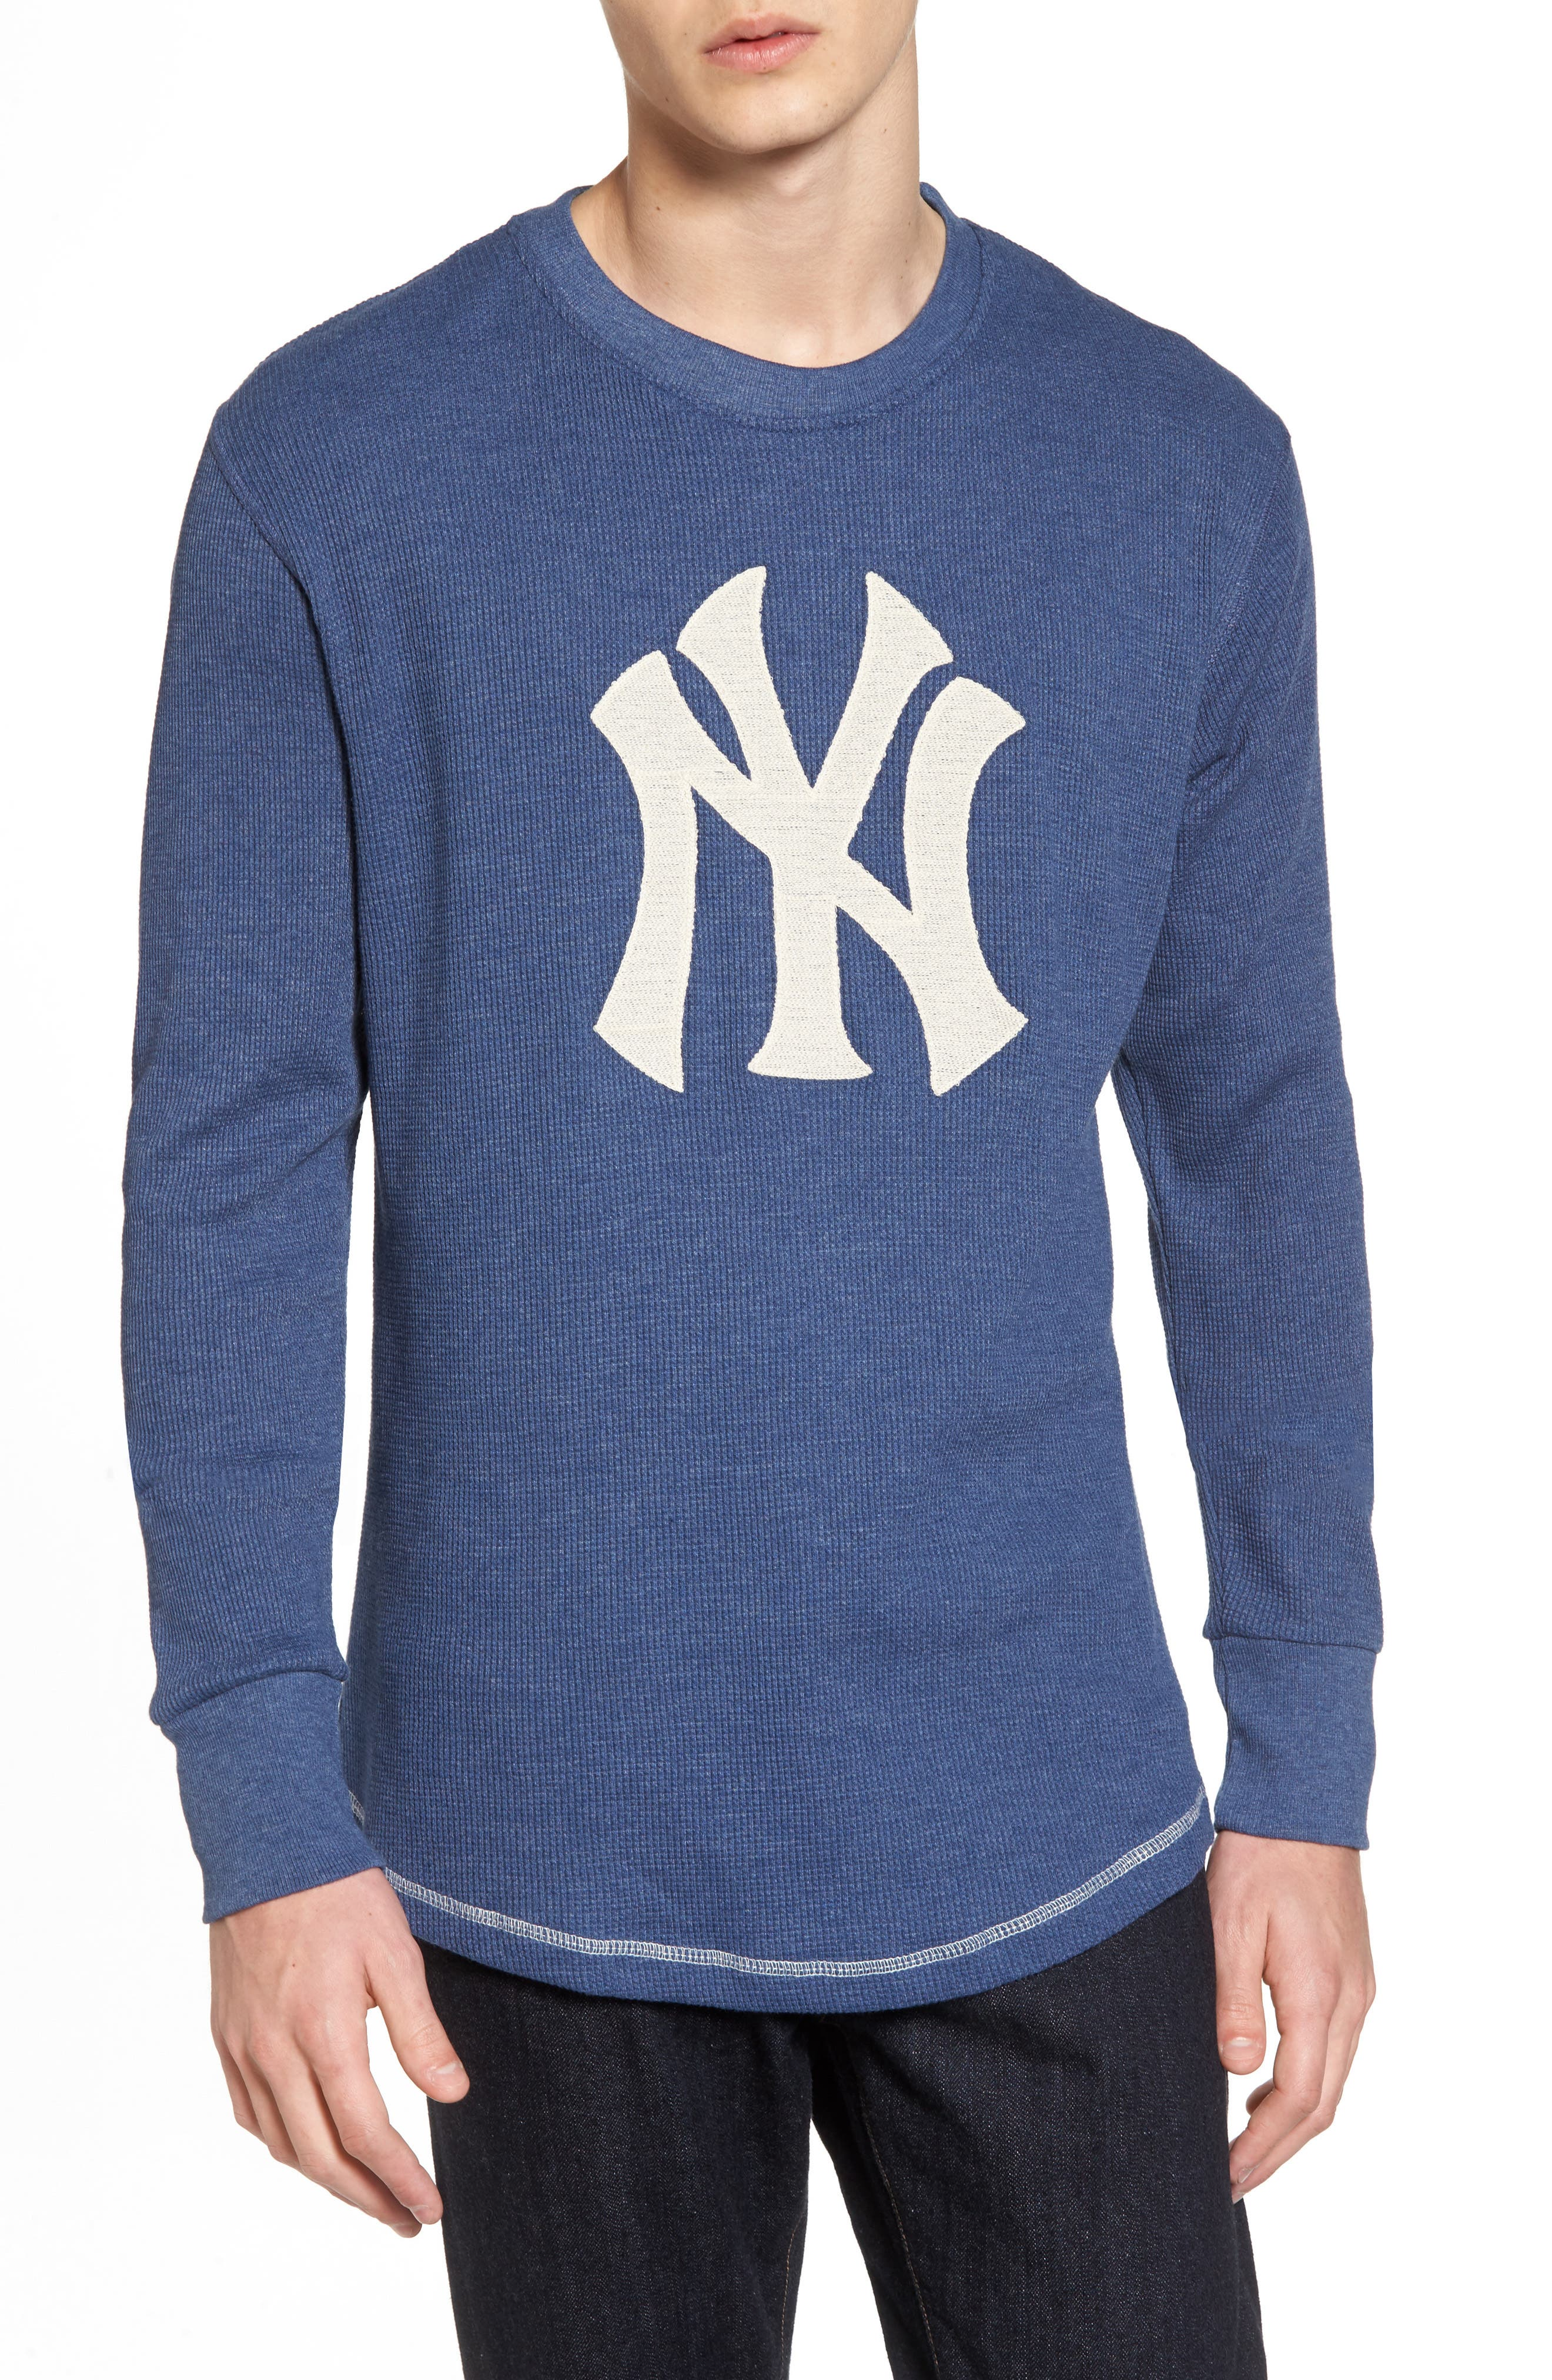 American Needle New York Yankees Embroidered Long Sleeve Thermal Shirt